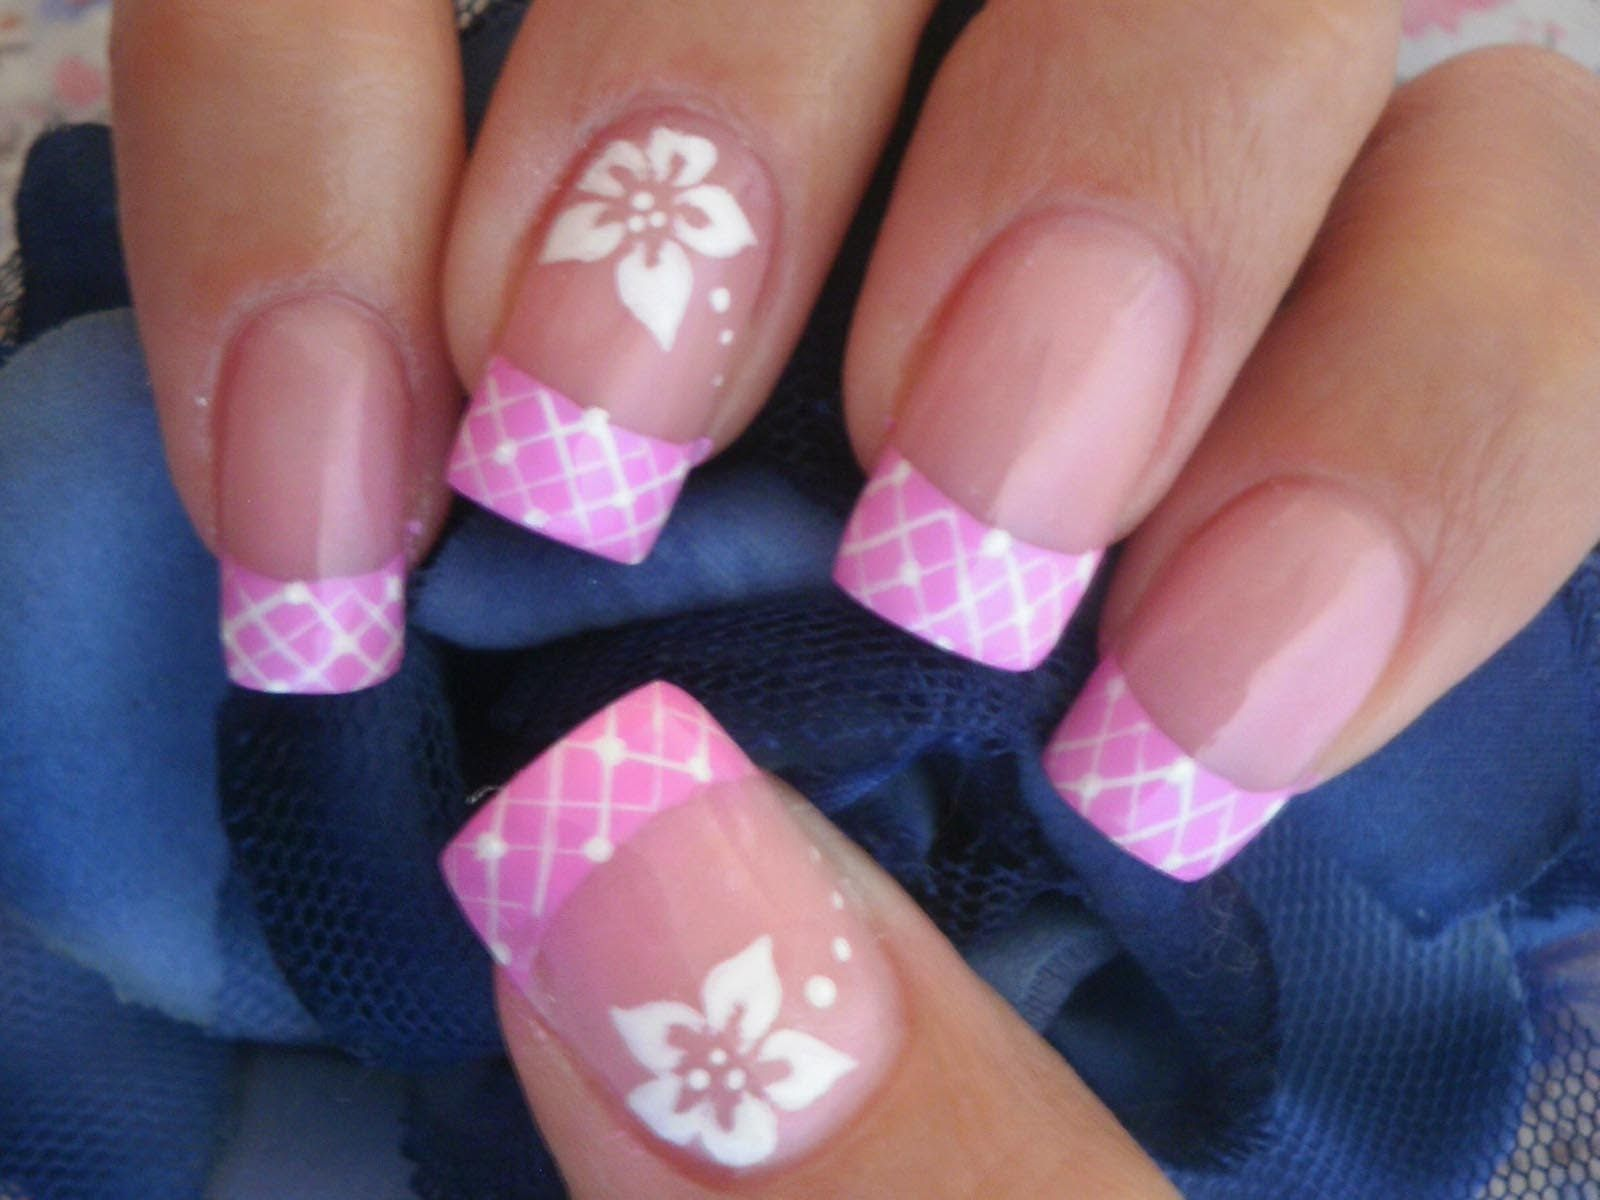 How to paint simple cute floral sencilla flower nail art mani step ...